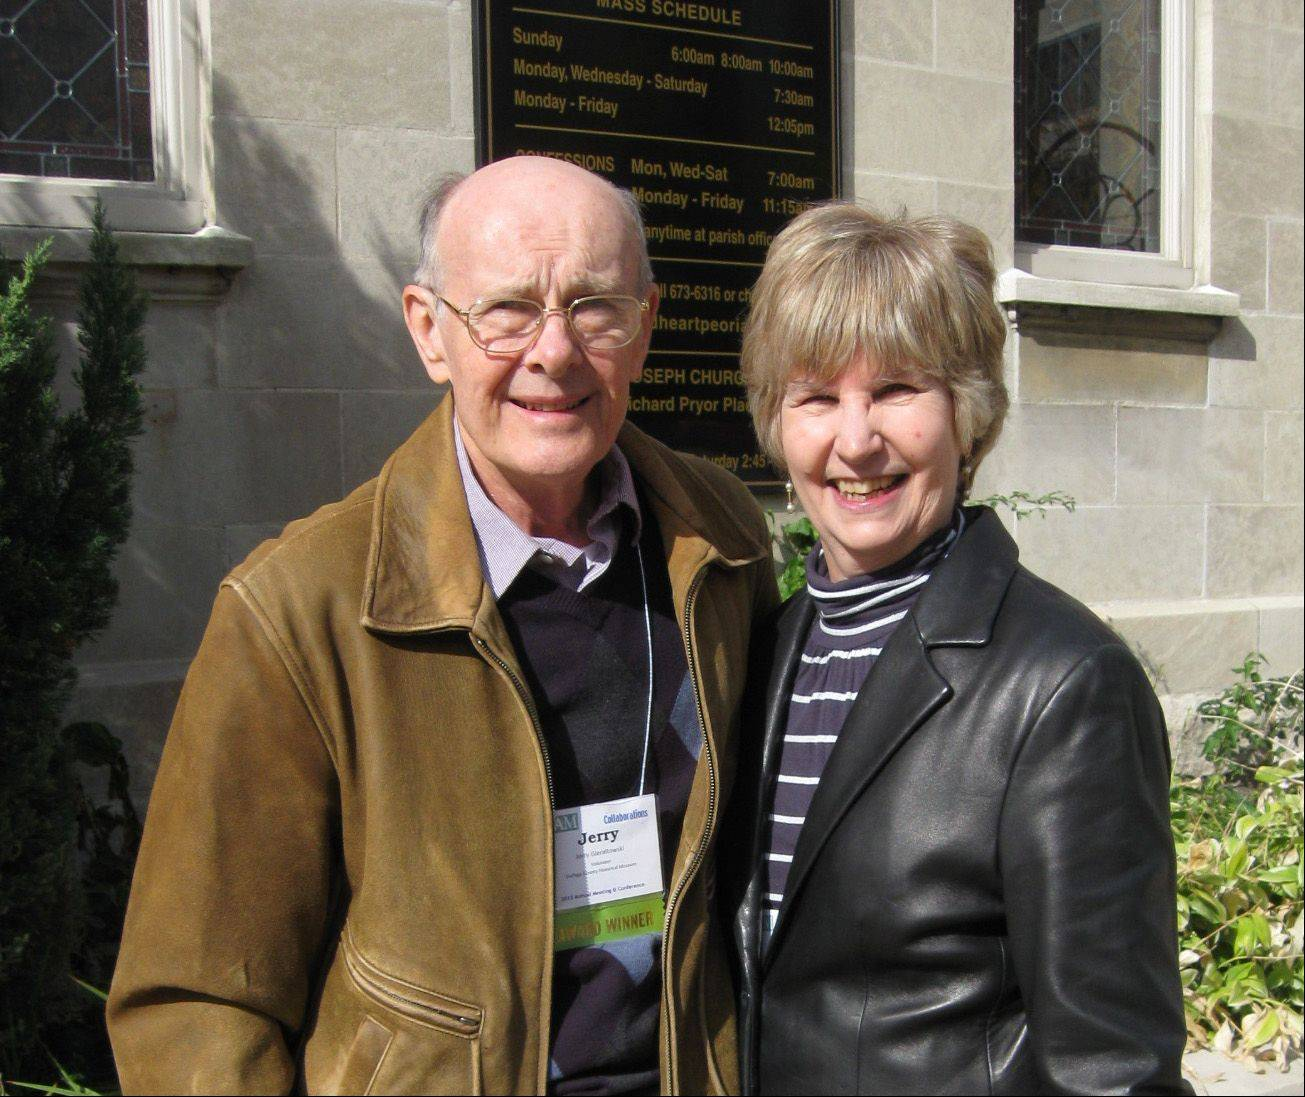 Jean and Jerry Gieraltowski of Naperville have put in 2,937 volunteer hours since 2001 at the DuPage County Historical Museum.